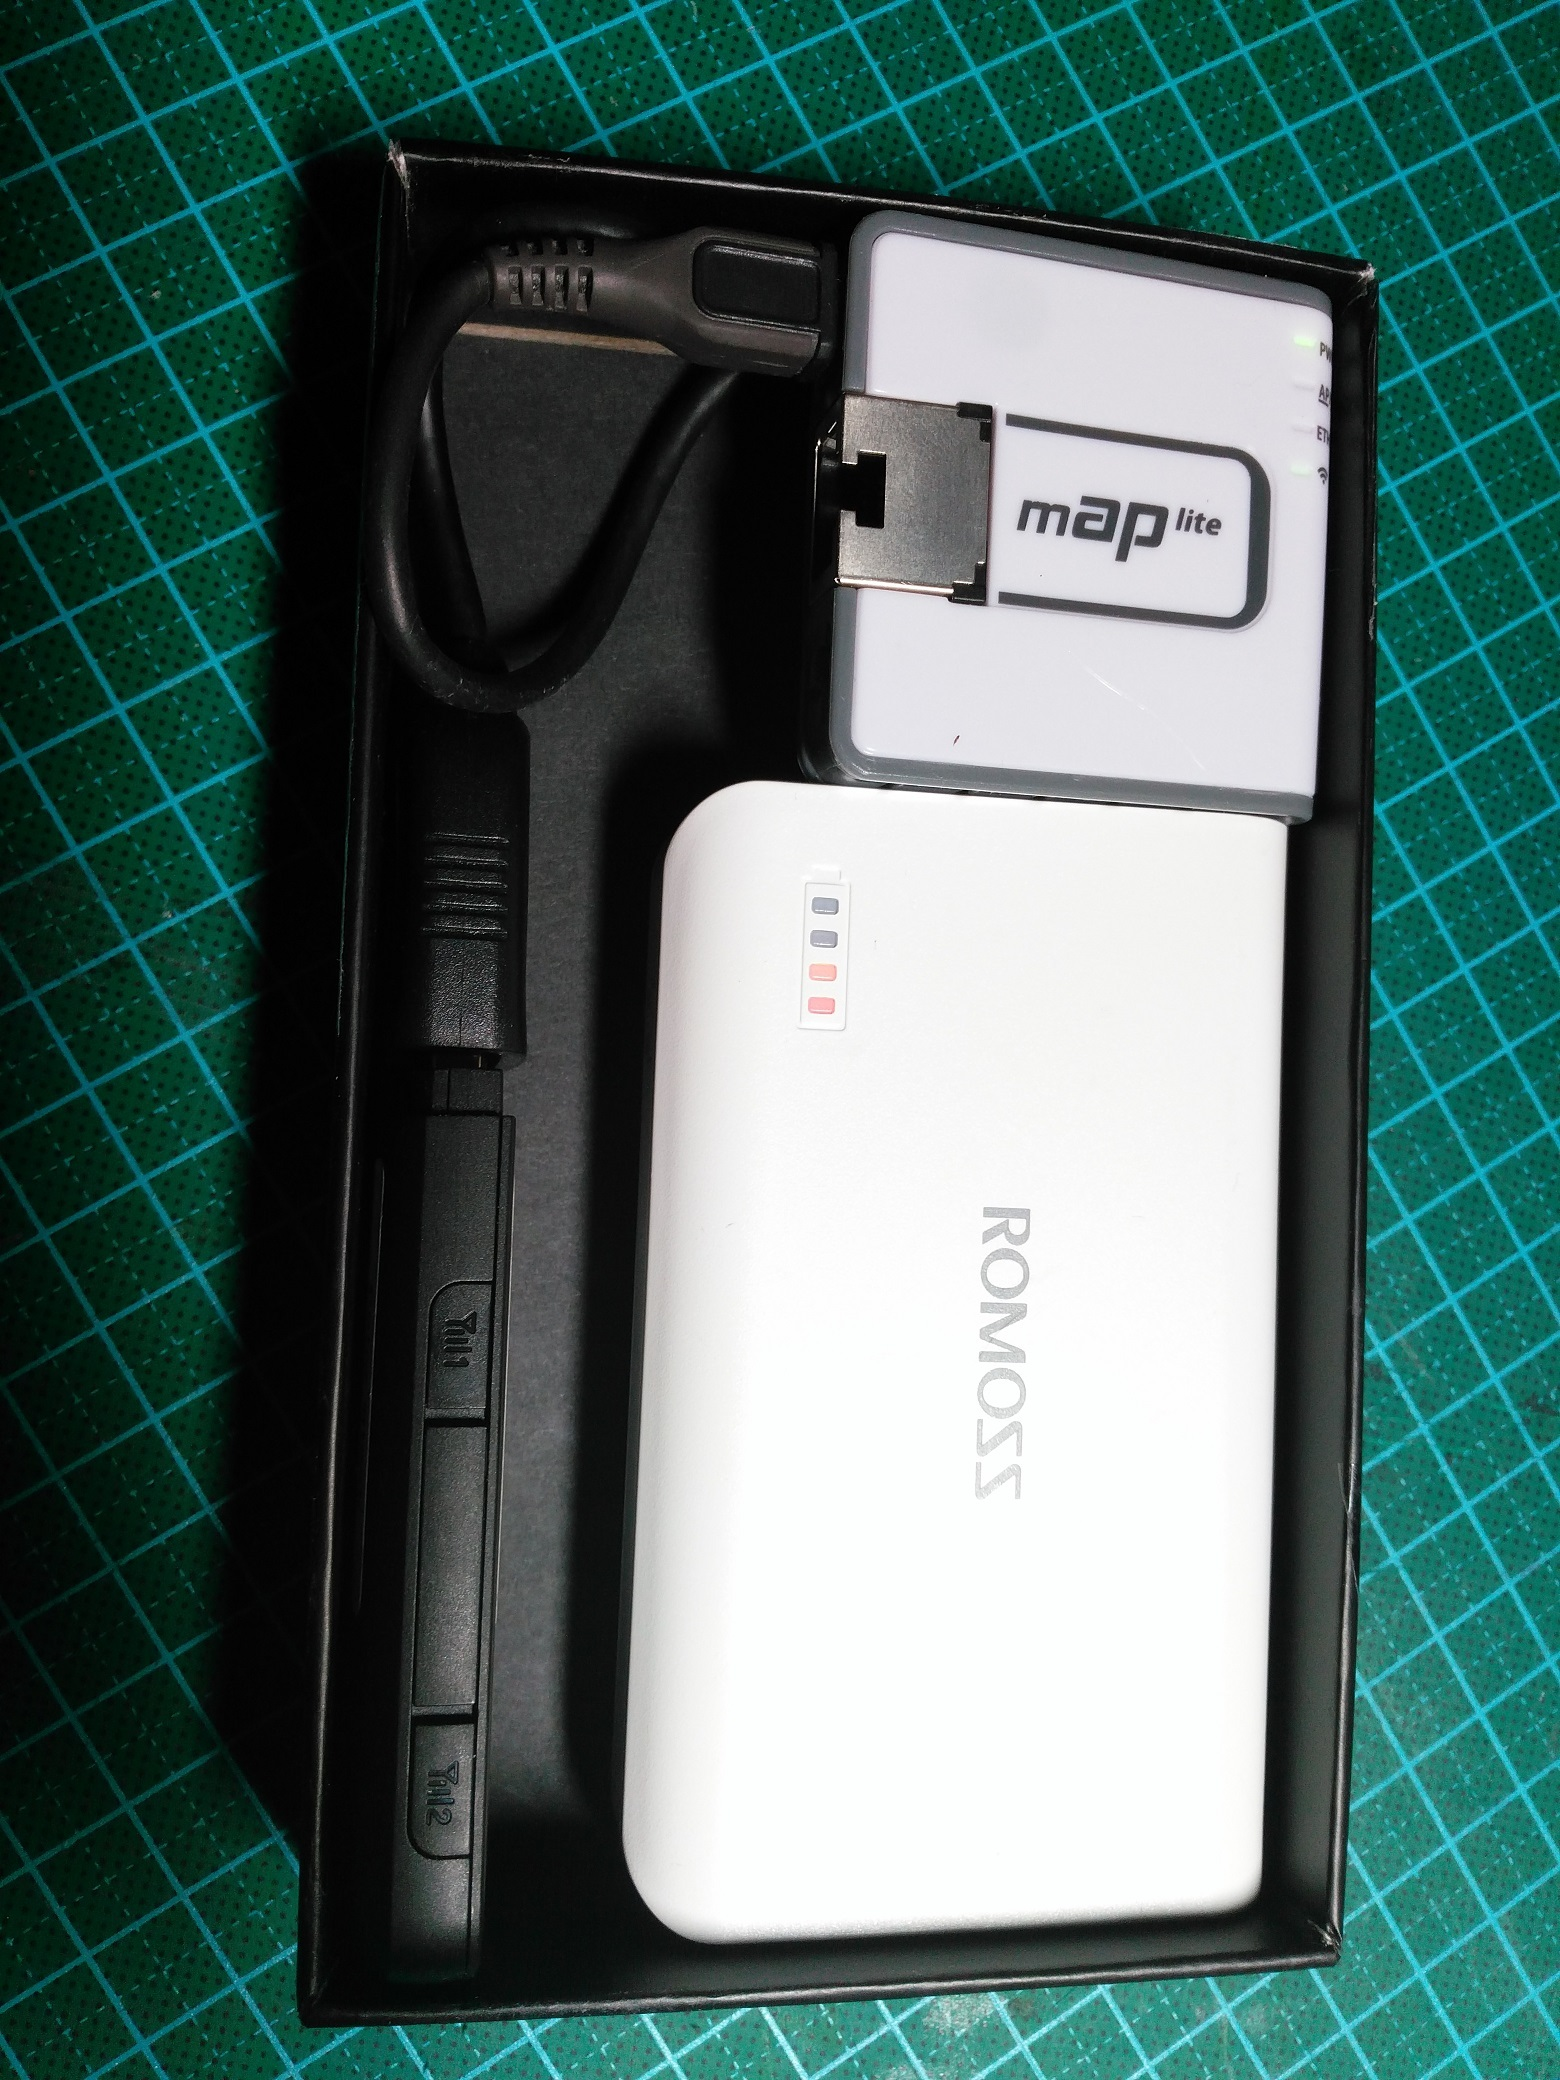 Mikrotik mAP lite - 36